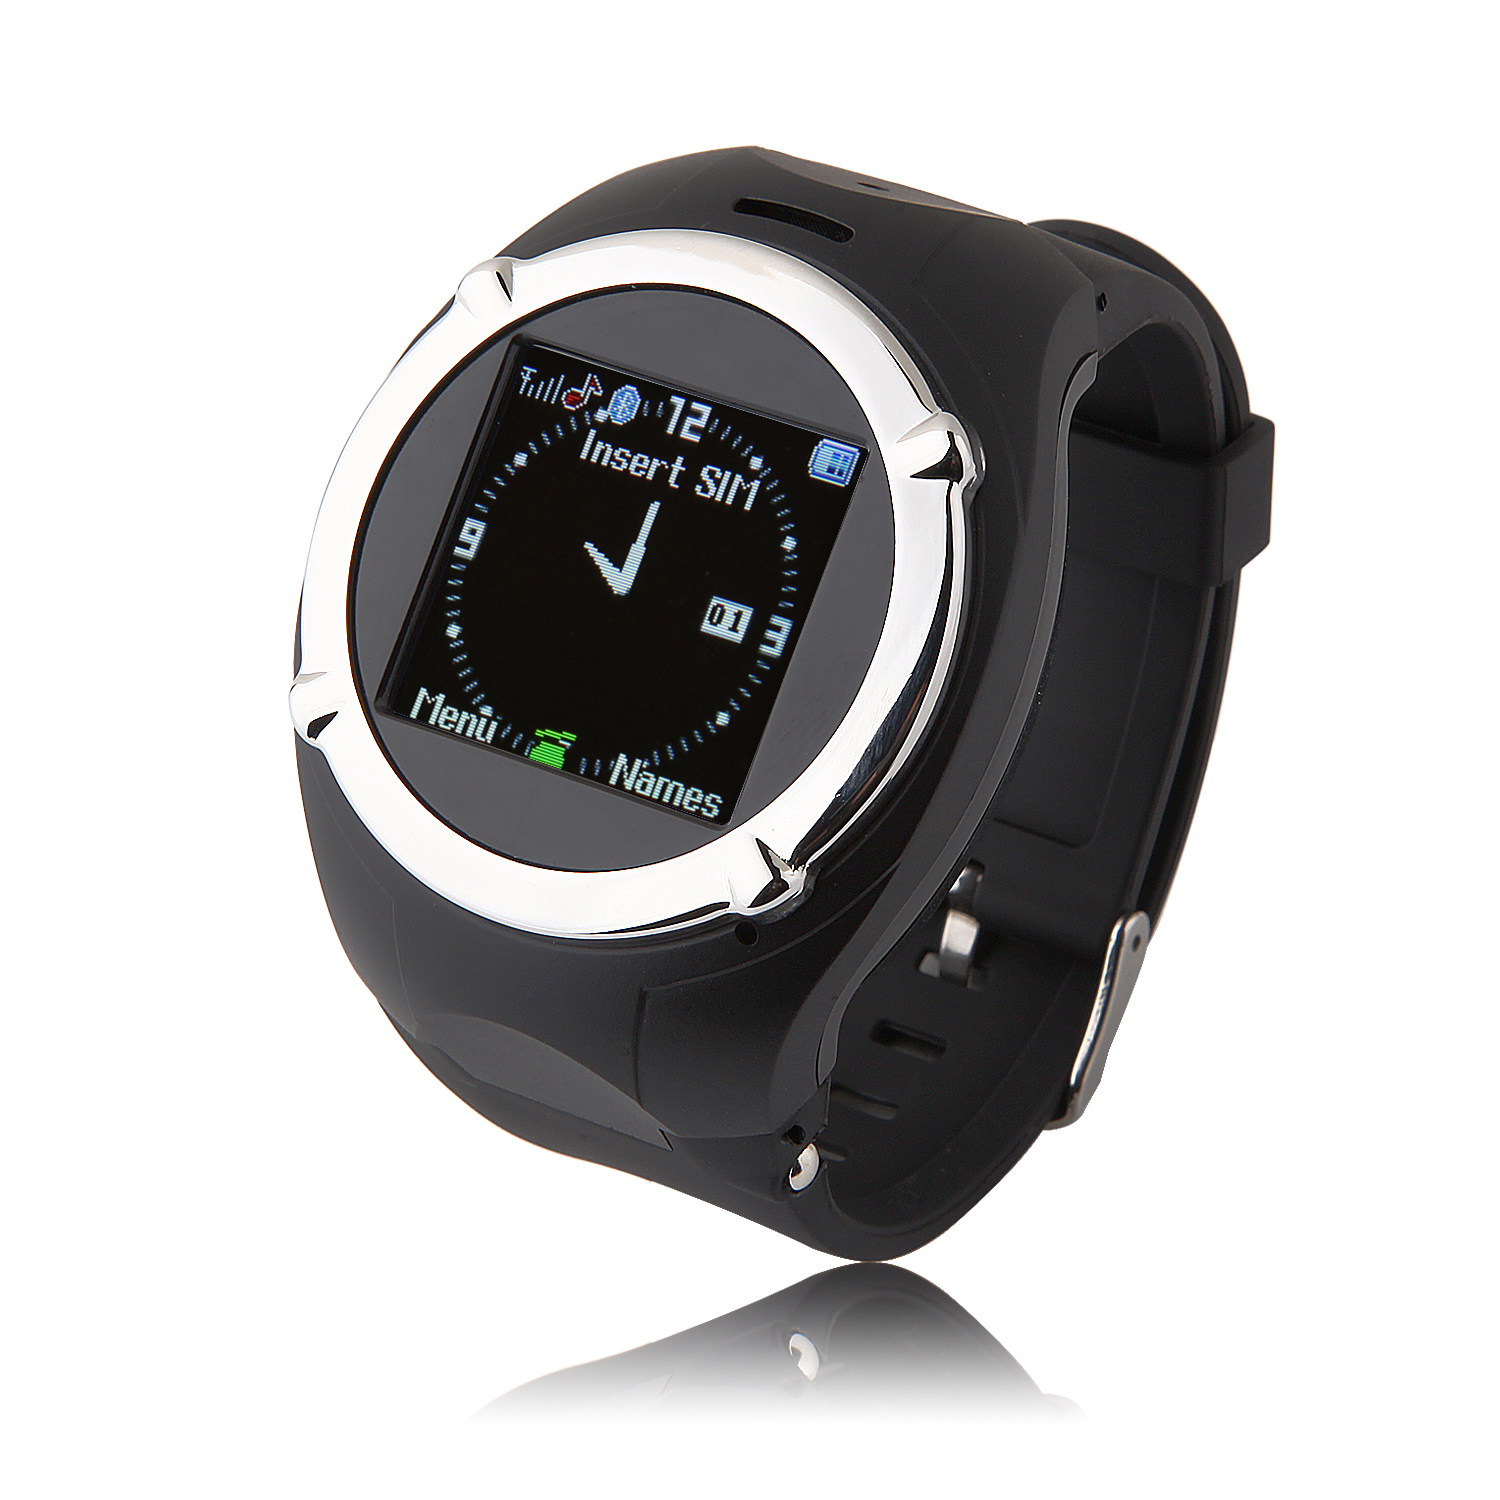 ZGPAX MQ998 Watch Phone Quad Band Single SIM Card 1.5 Inch Bluetooth FM Camera Black